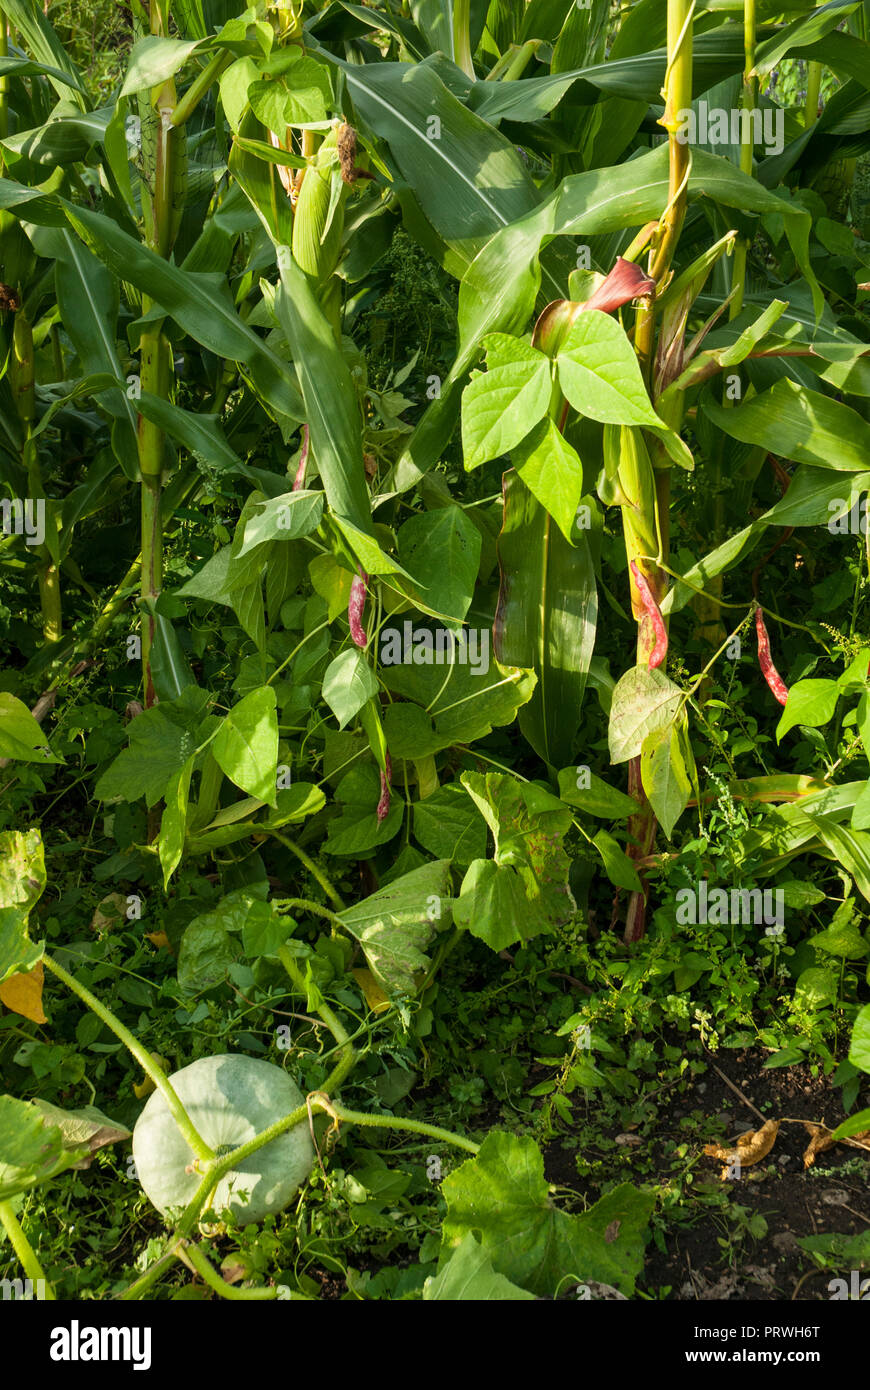 Three sisters method of growing with beans planted to grow up sweet corn/ maize and pumpkins growing underneath. Instructional-three sisters method. - Stock Image